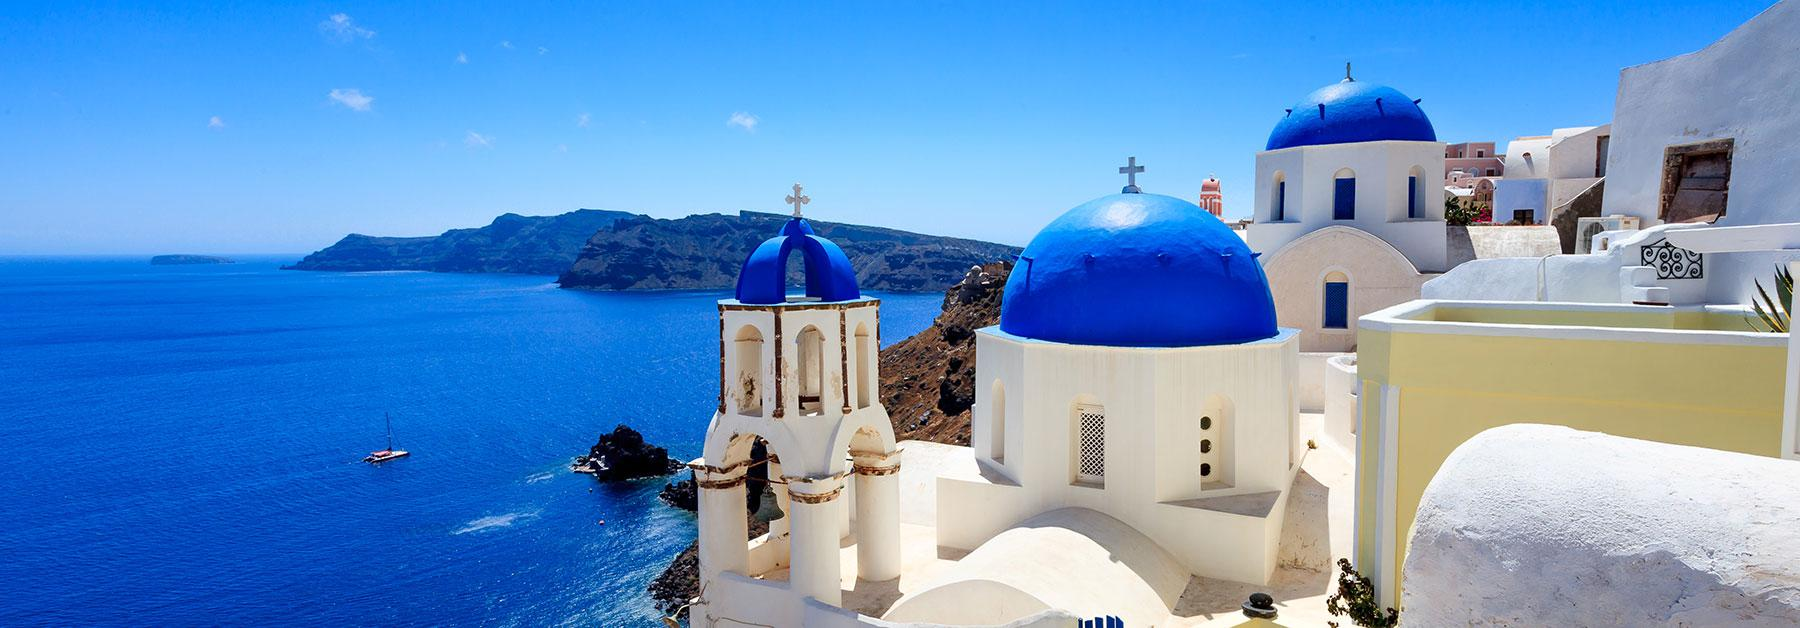 greece vacation destinations - photo #44